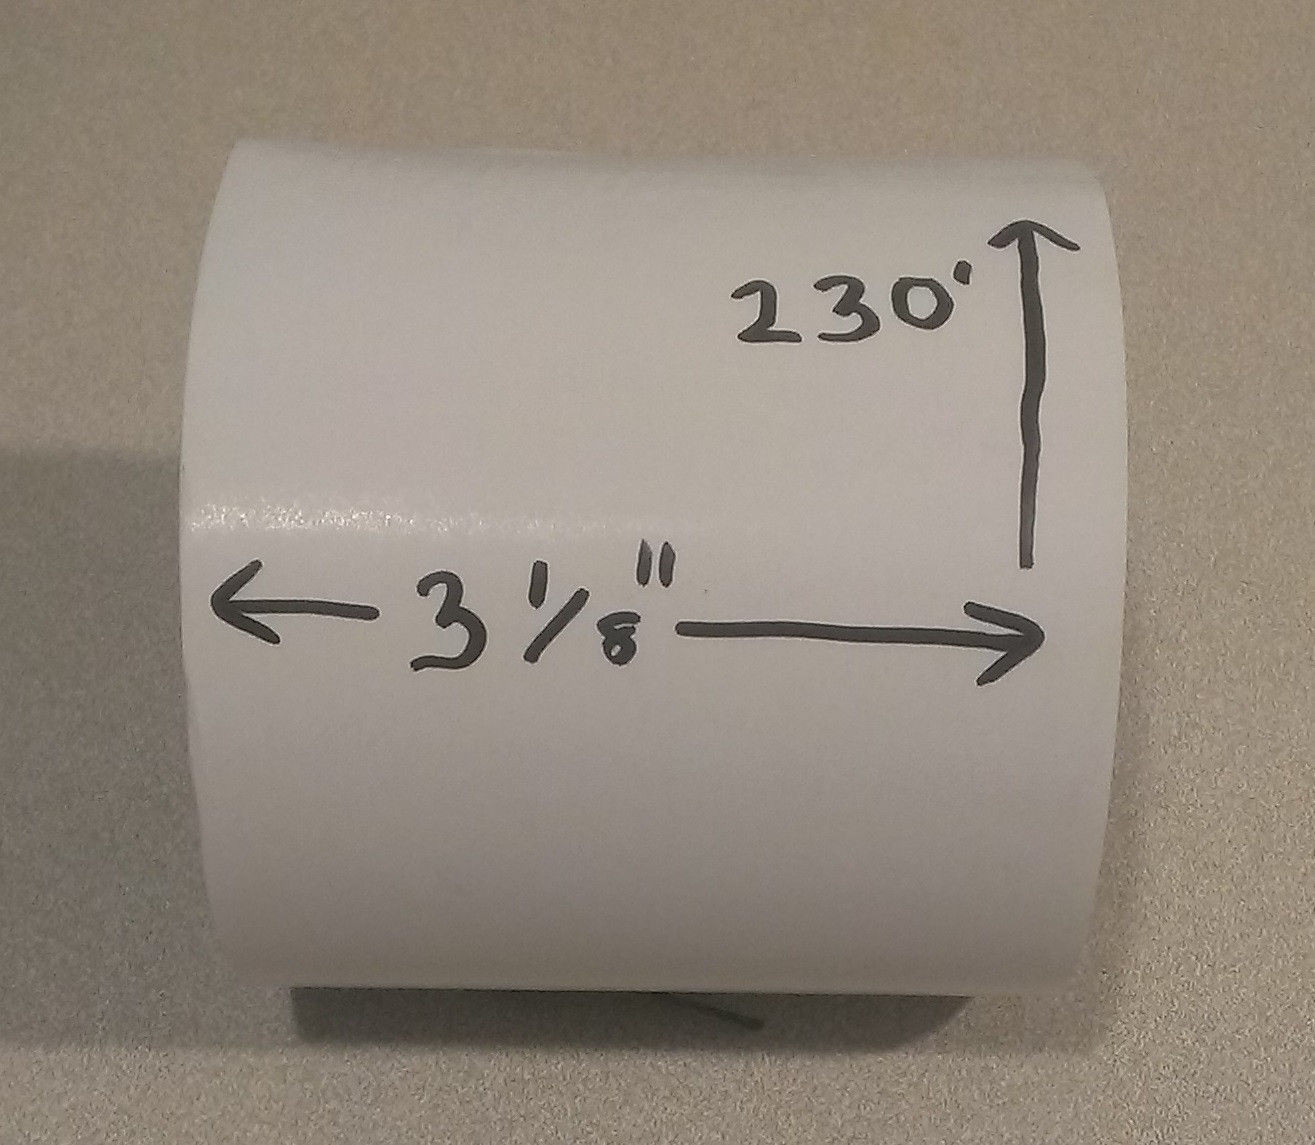 Thermal Pos Receipt Paper Rolls 3 1 8 Quot X 220 For Thermal